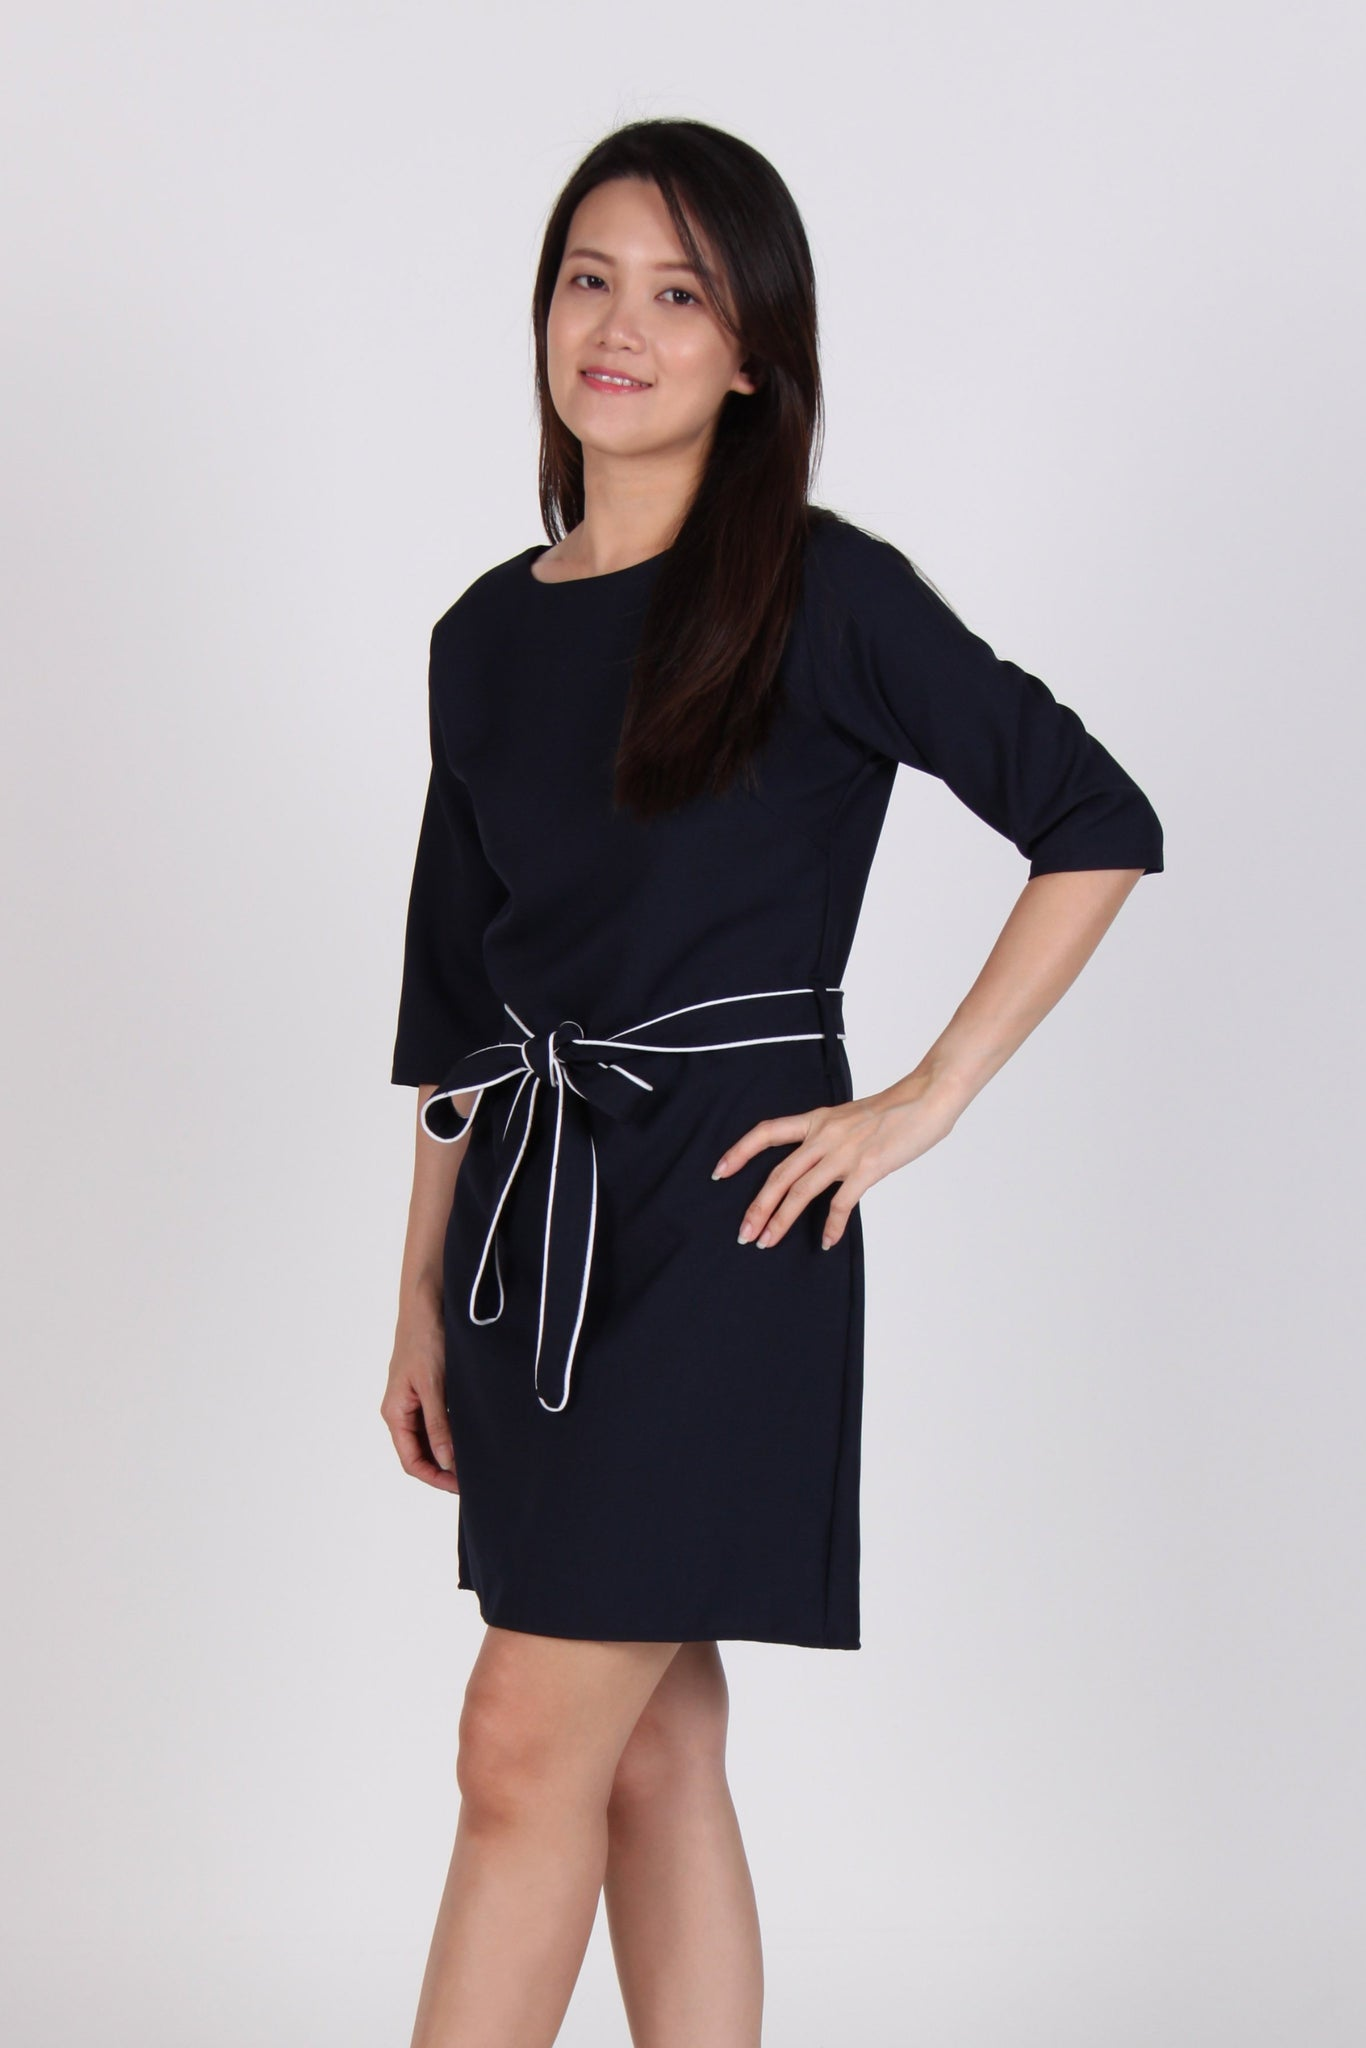 Quarter Sleeve Contrast Front Tie Dress in Navy Blue